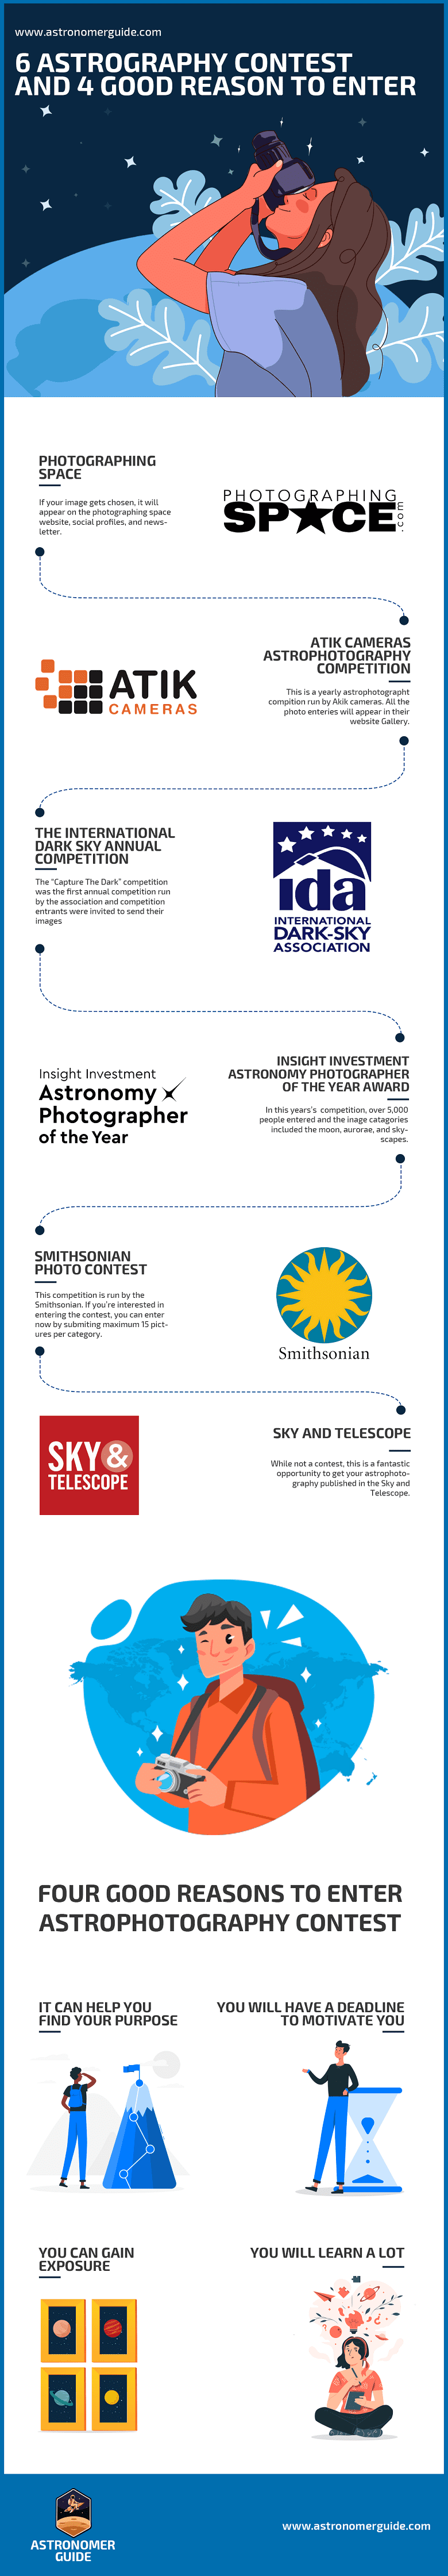 Astrography Contest